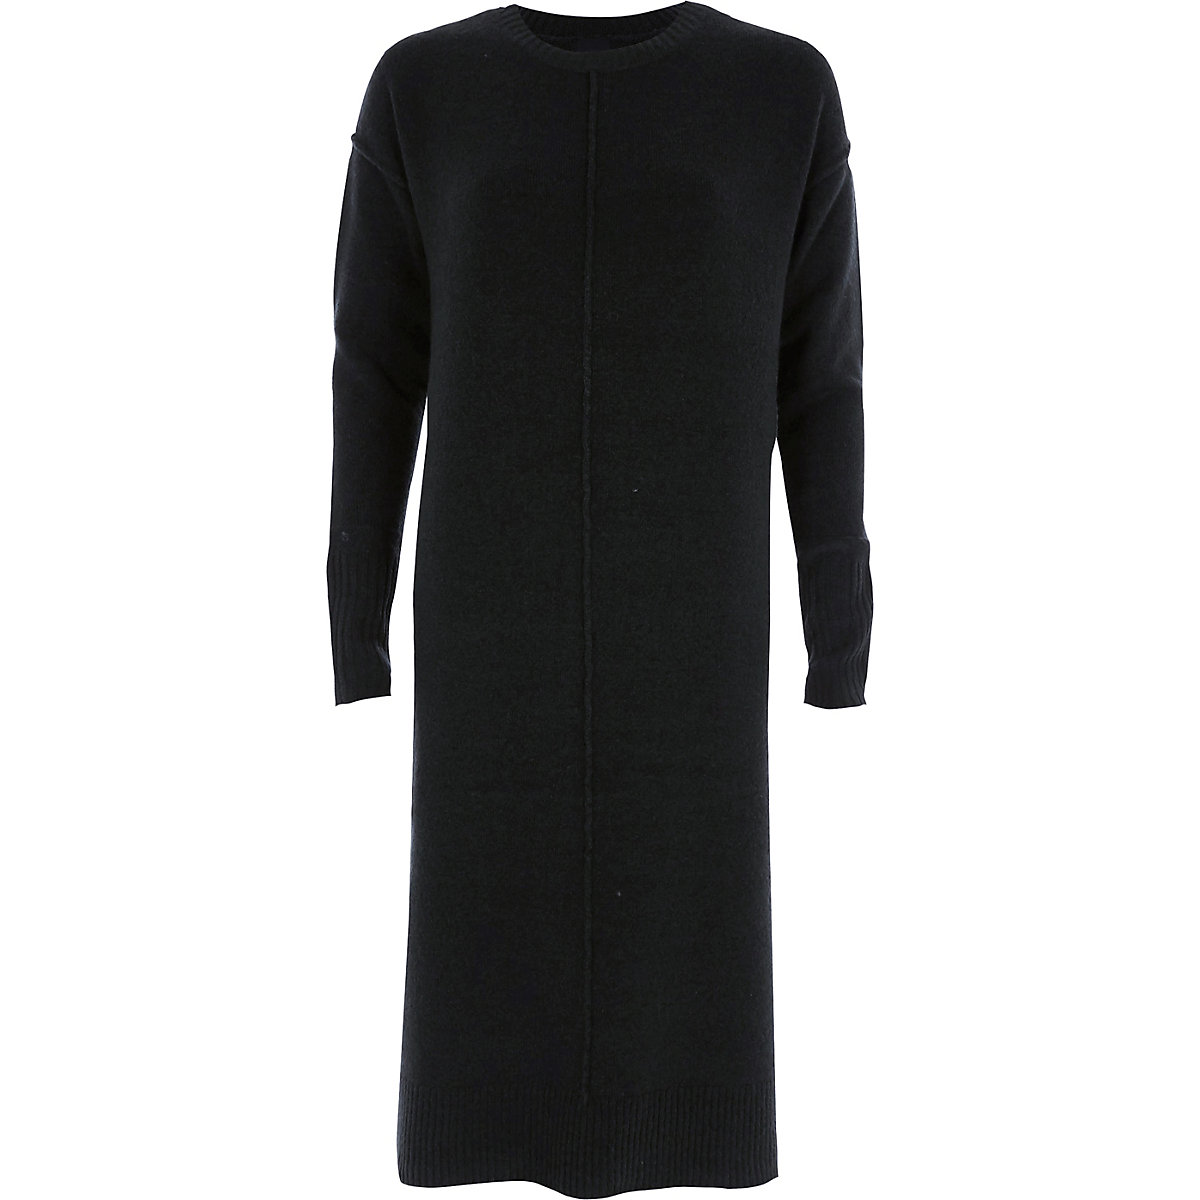 Dark green long sleeve knitted dress